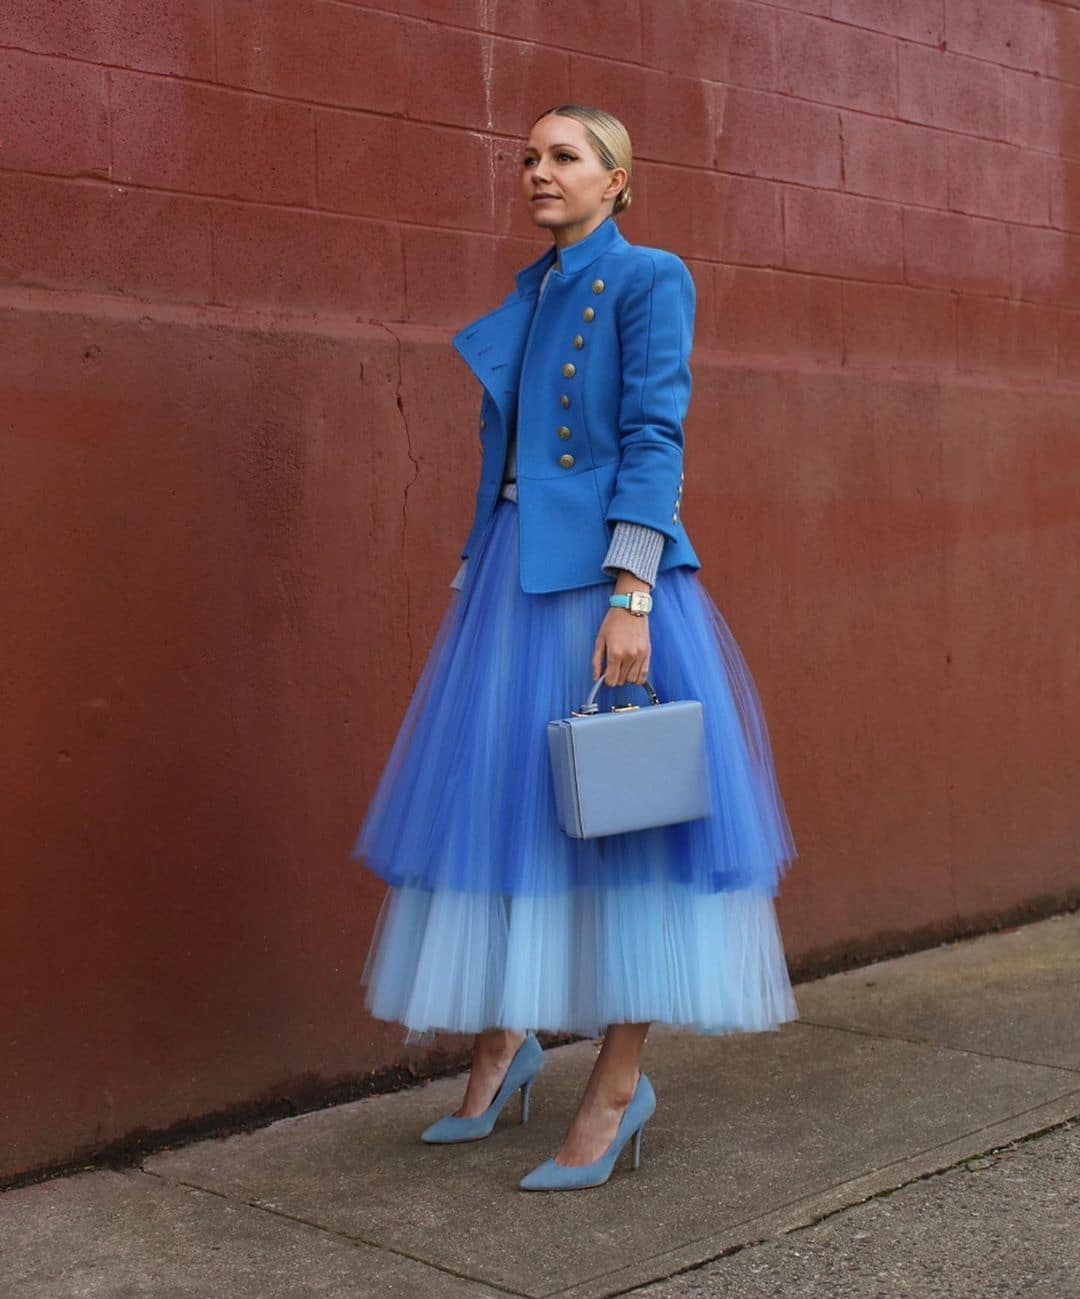 blair-eadie-bee-how-to-wear-blue-with-style-pantone-colour-of-the-year-2020